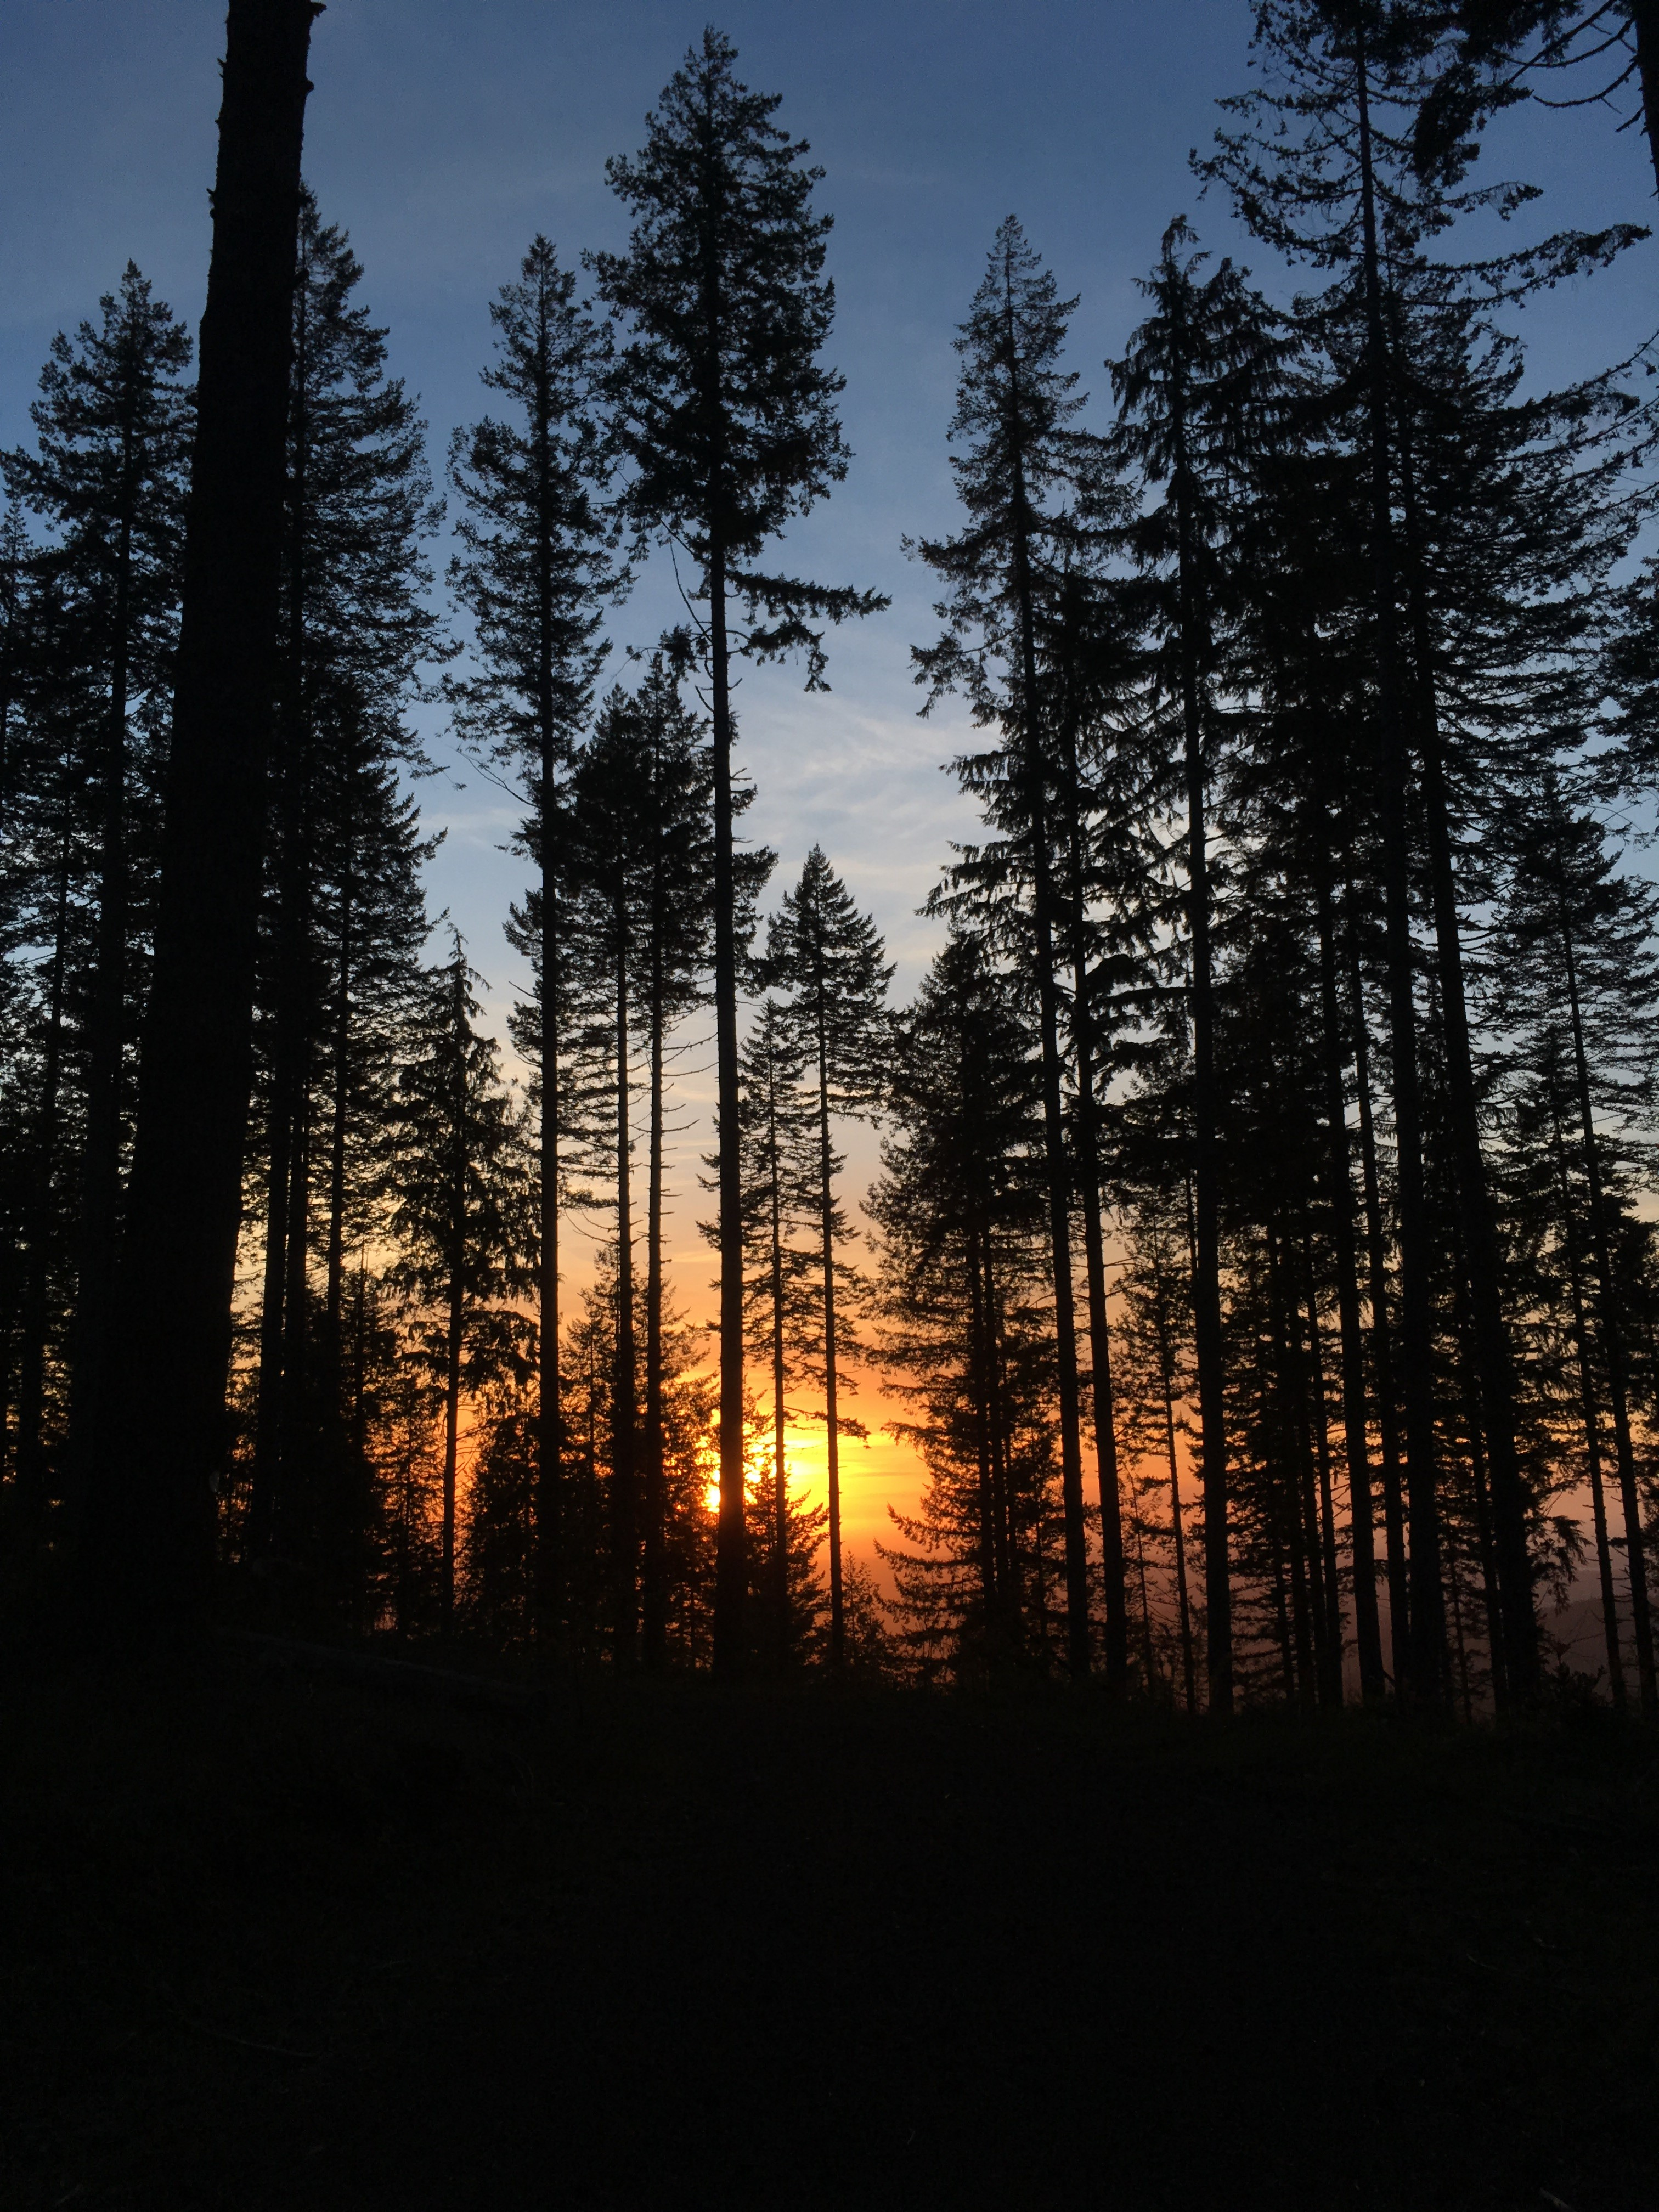 Dark trees in front of a sunset